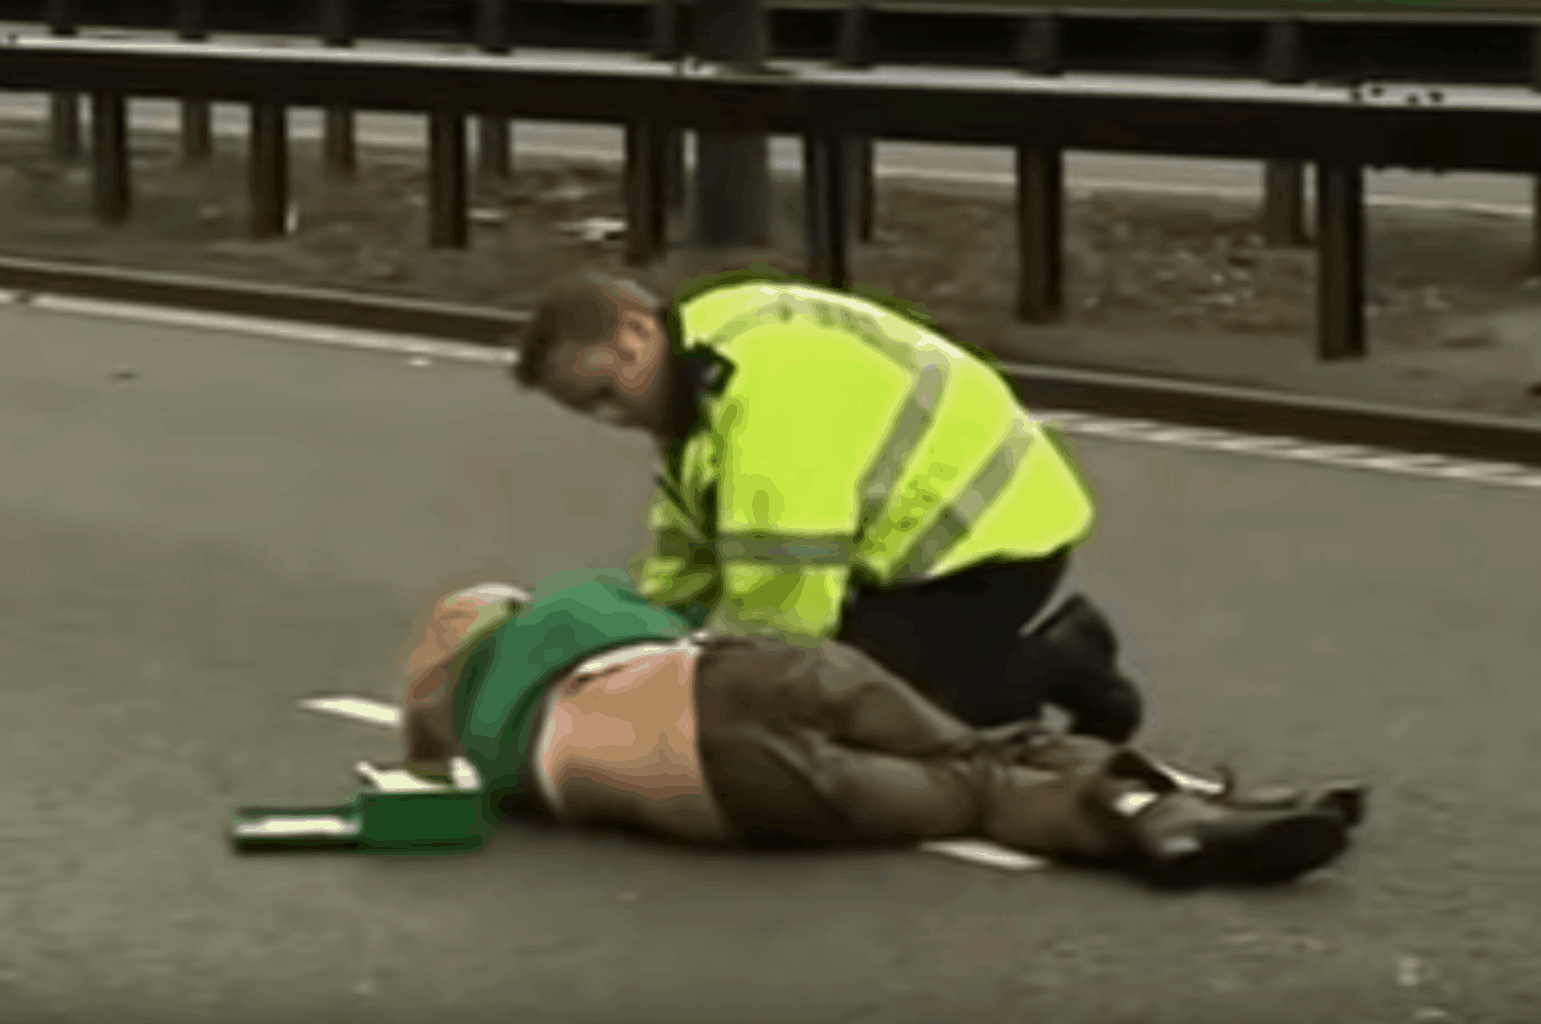 Ursula Eriksson being tended to by a policeman